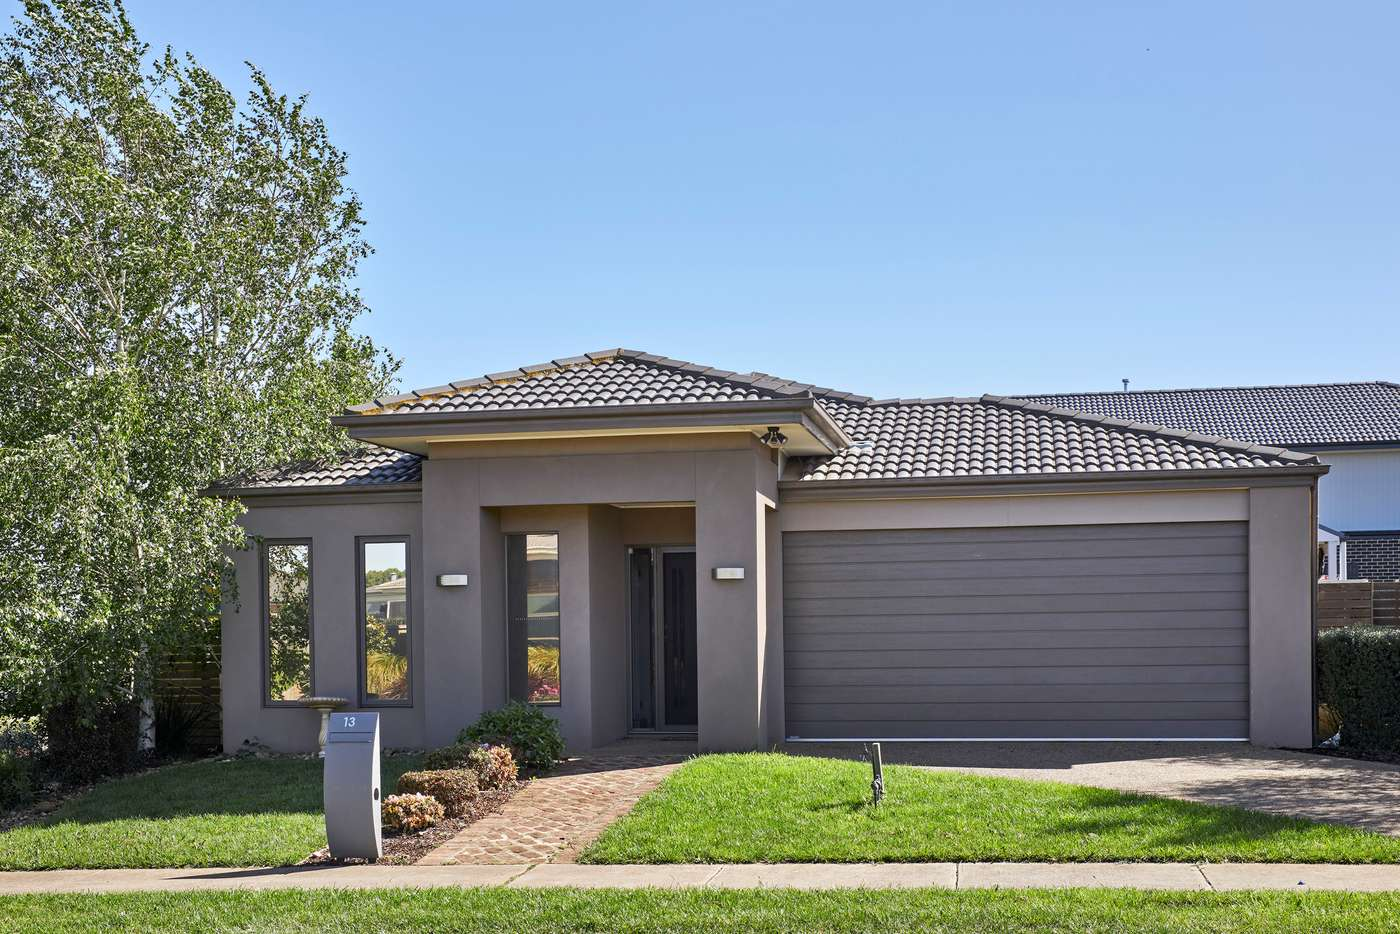 Main view of Homely house listing, 13 Warwick Way, Drouin VIC 3818